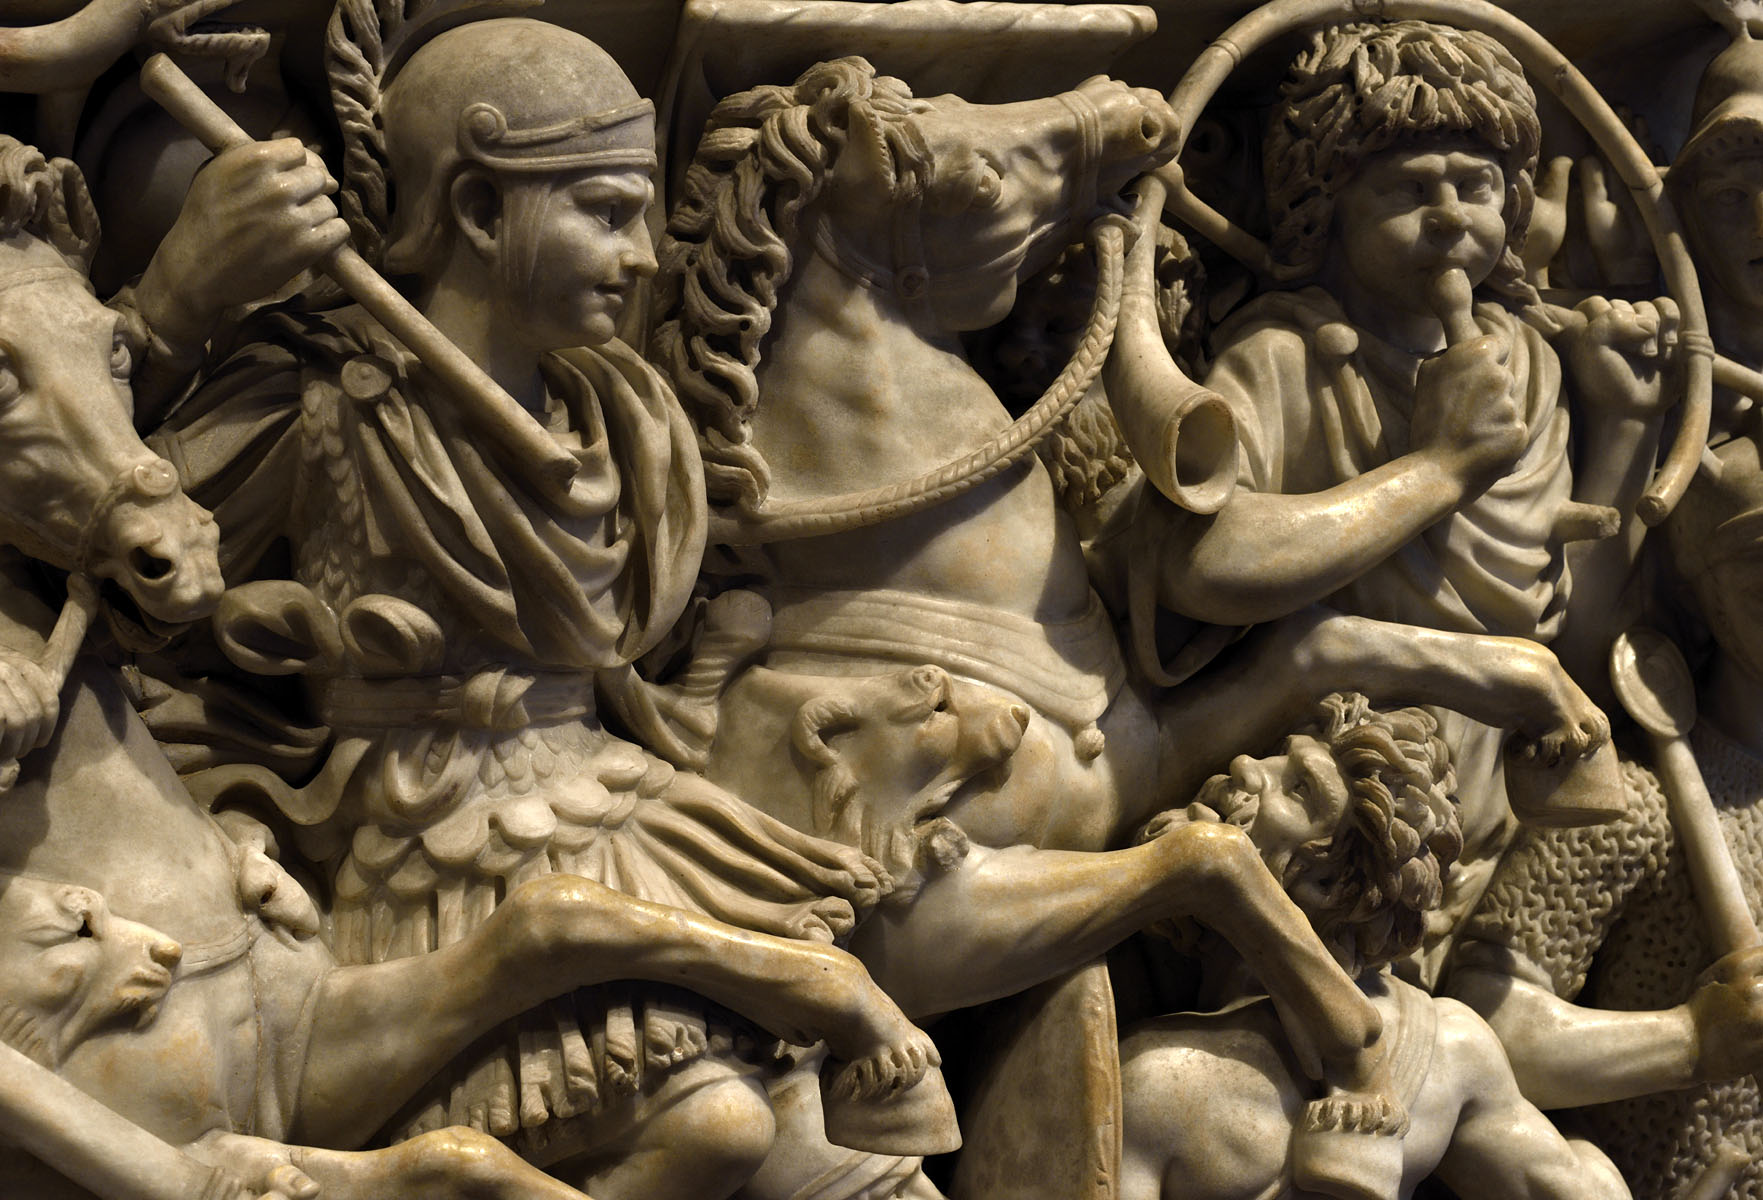 Sarcophagus with battle scene know as the Great Ludovisi sarcophagus. A close-up of the front panel. Proconnesus marble. Mid-3rd century CE. Inv. No. 8574. Rome, Roman National Museum, Palazzo Altemps